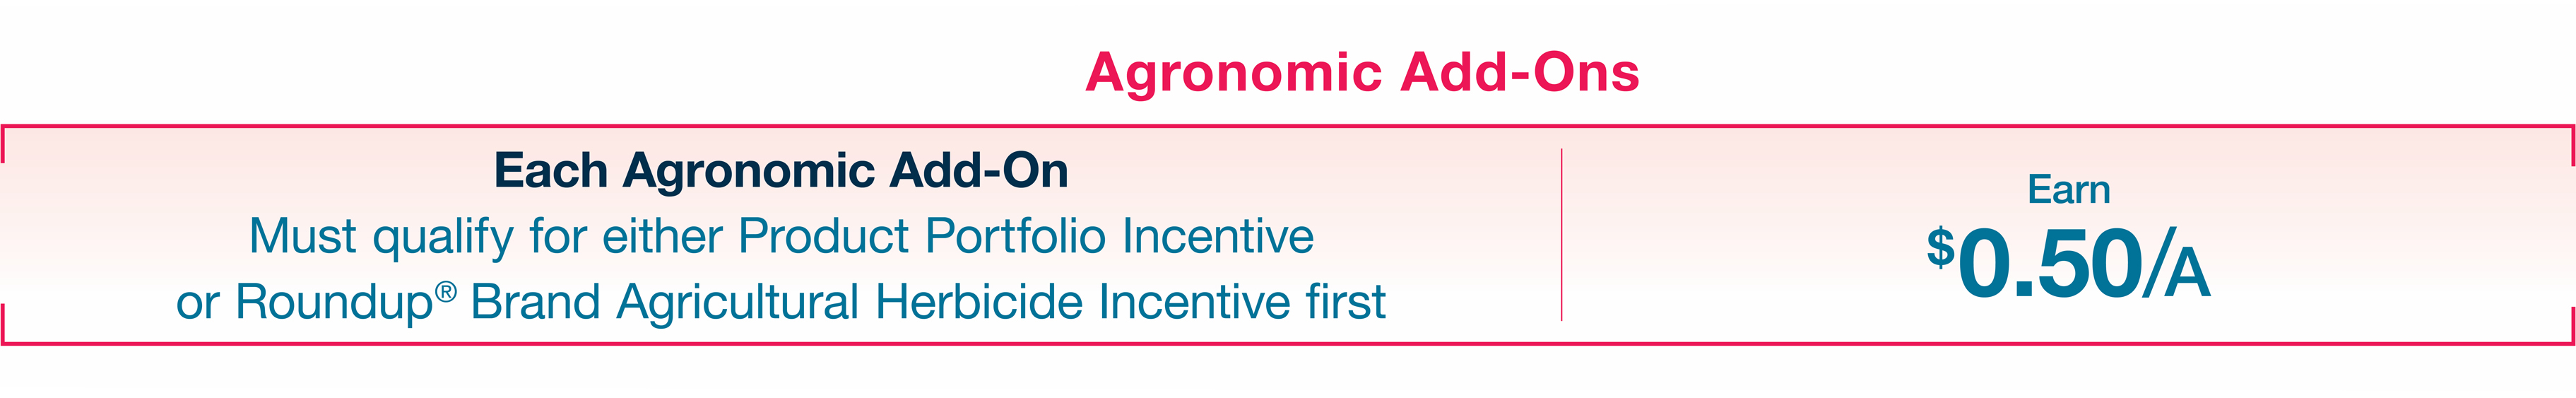 Agronomic Add-ons Chart showing how qualifying agronomic add-ons earn rewards